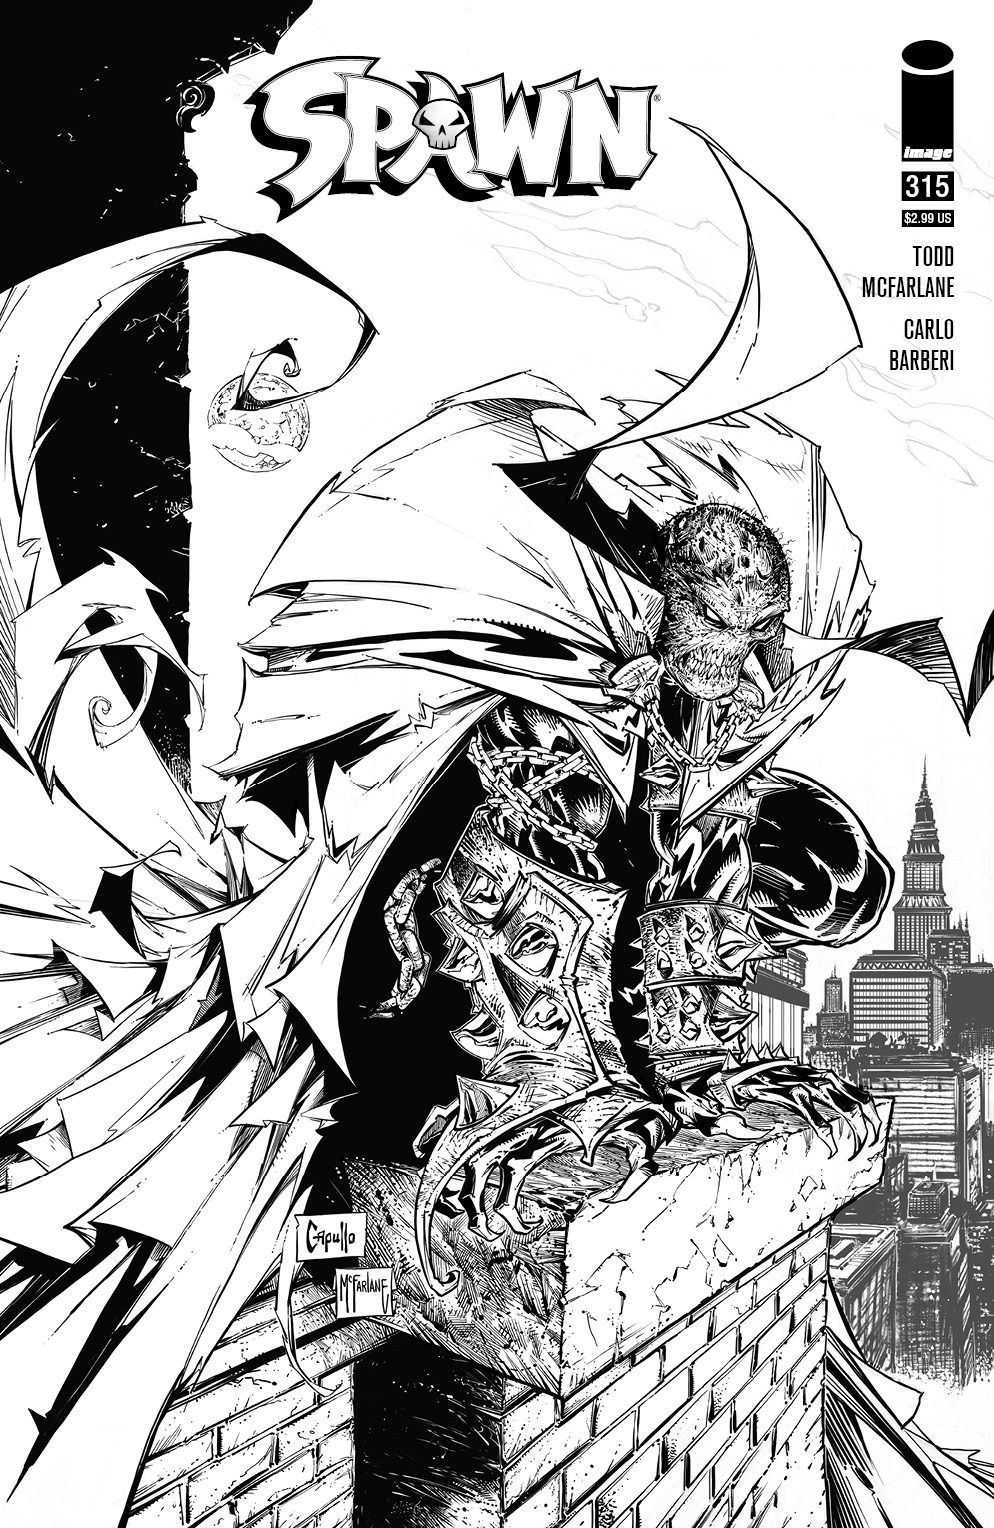 Spawn-315_Cover_E_c6815a0147f8285e3b5042ebb3626151 ComicList: Image Comics New Releases for 02/24/2021